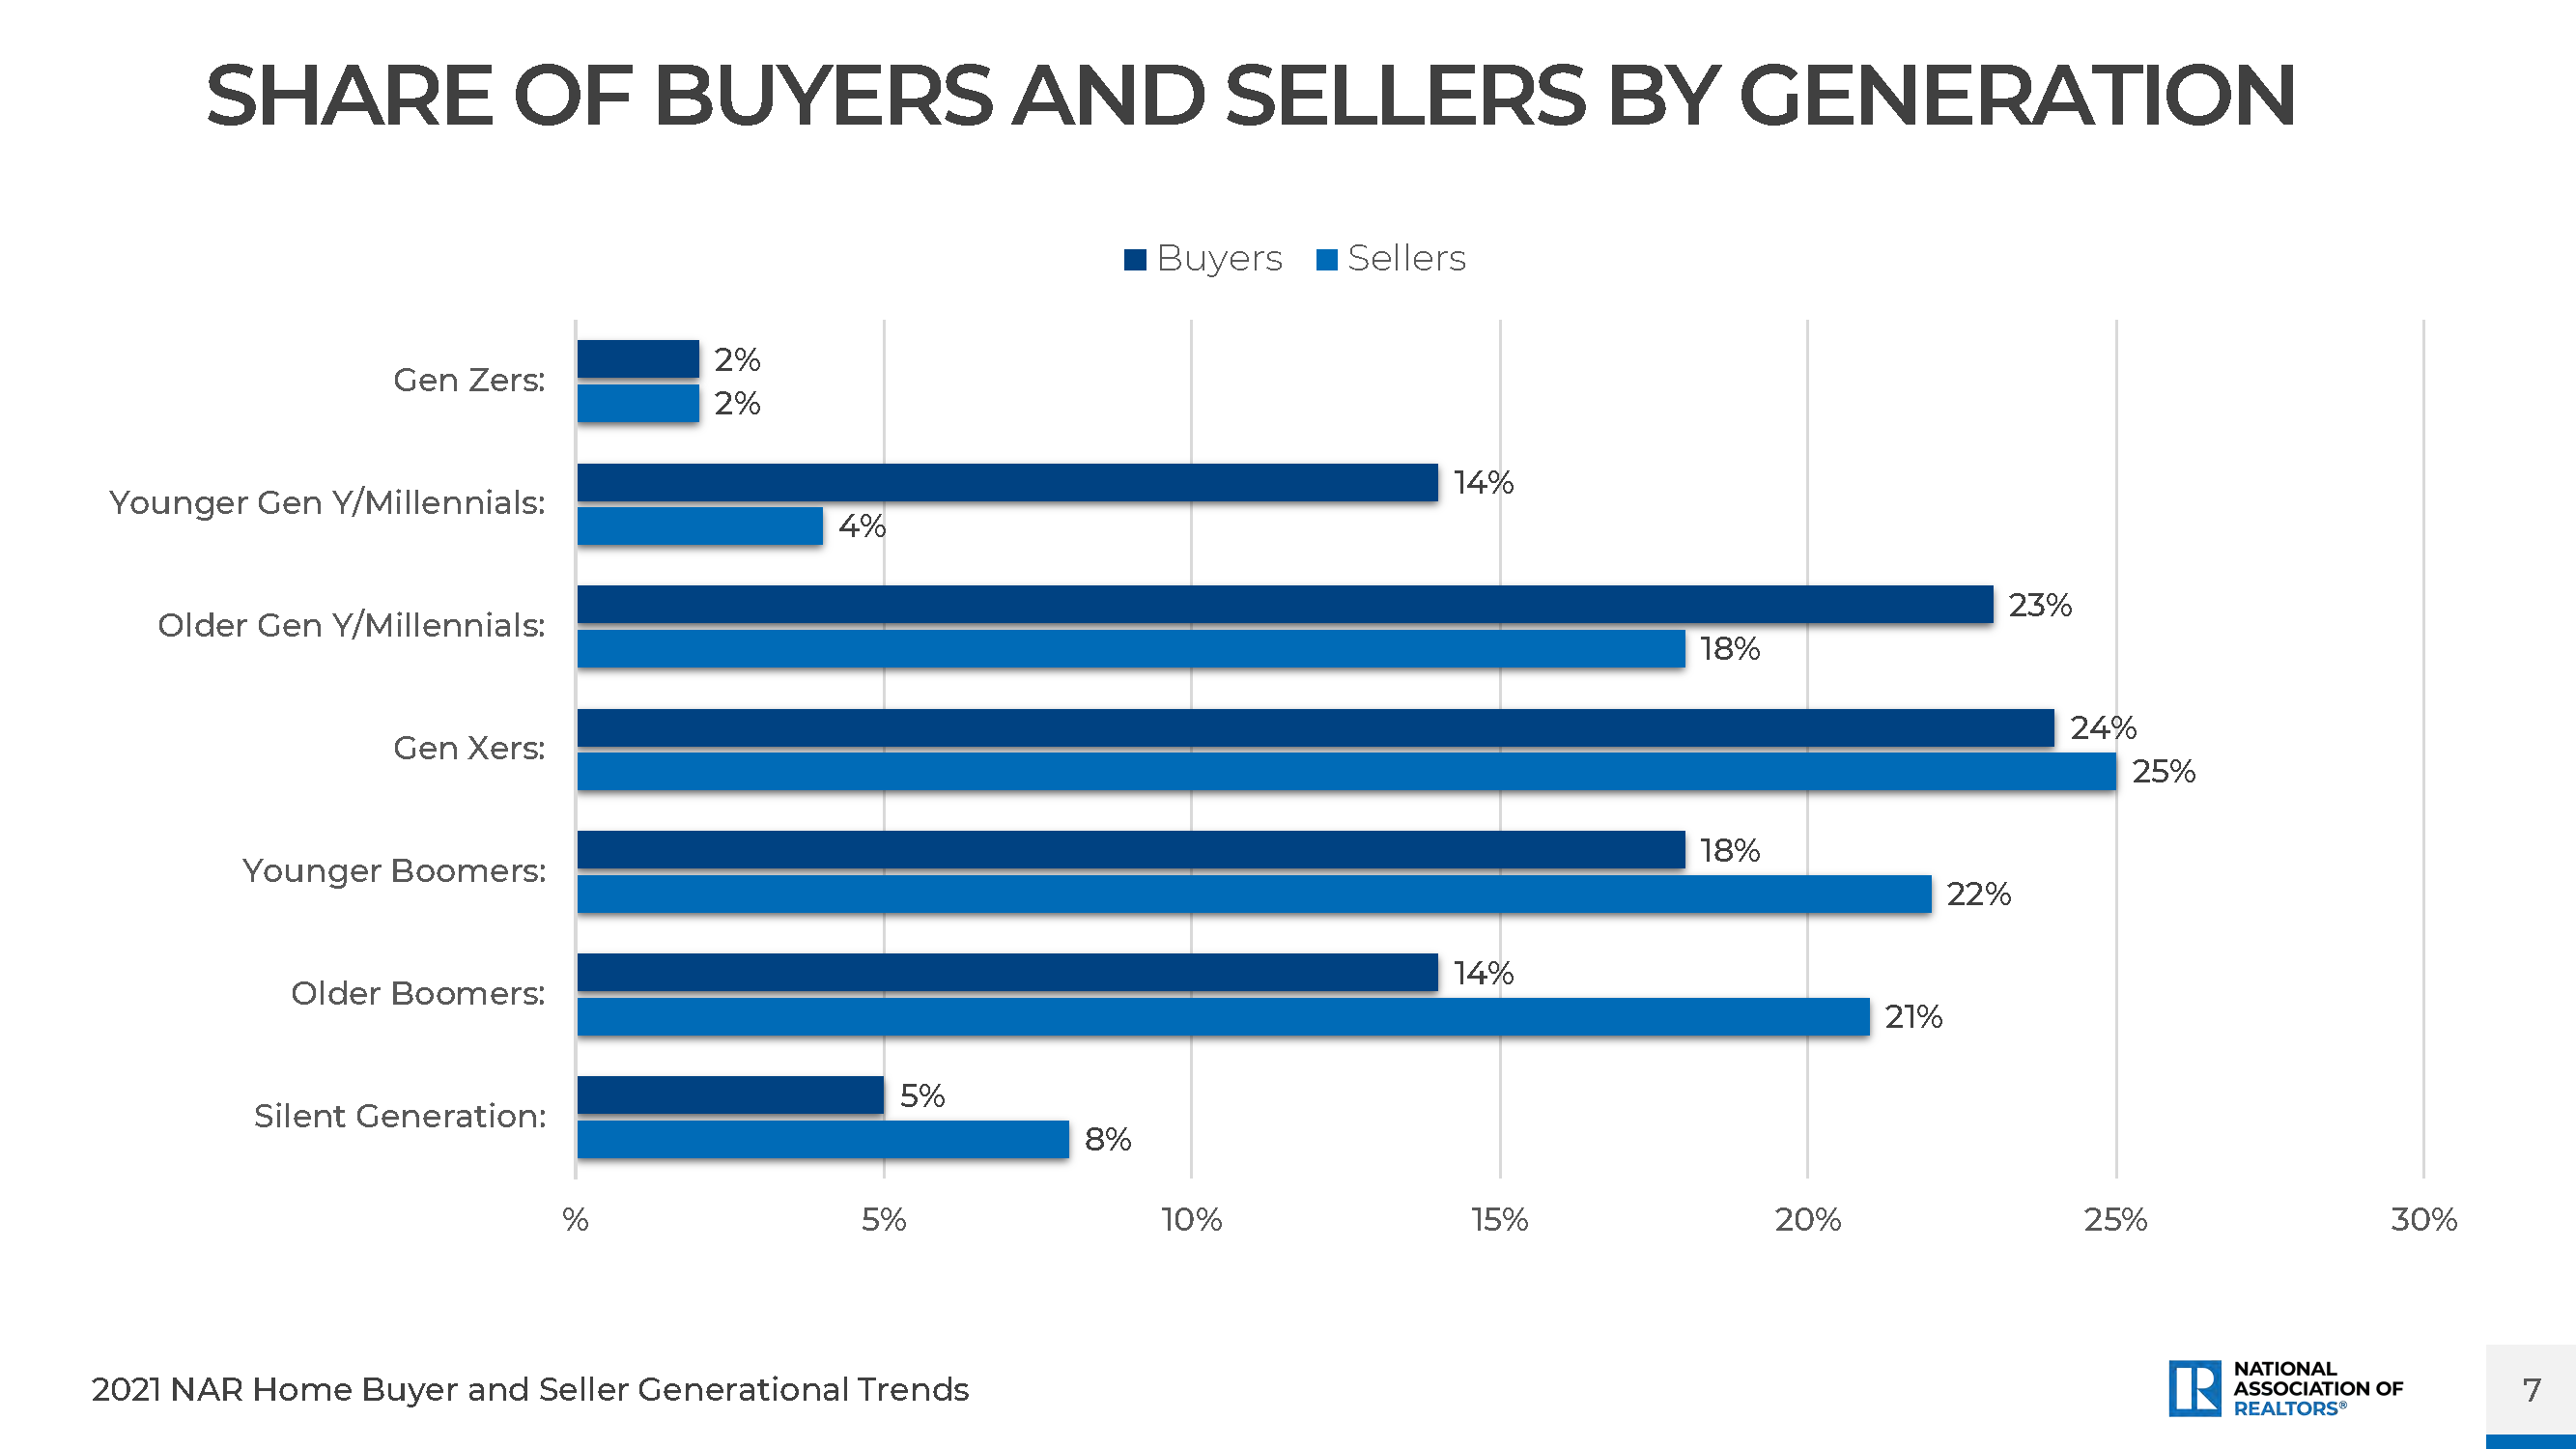 Share of Buyers and Sellers by Generation